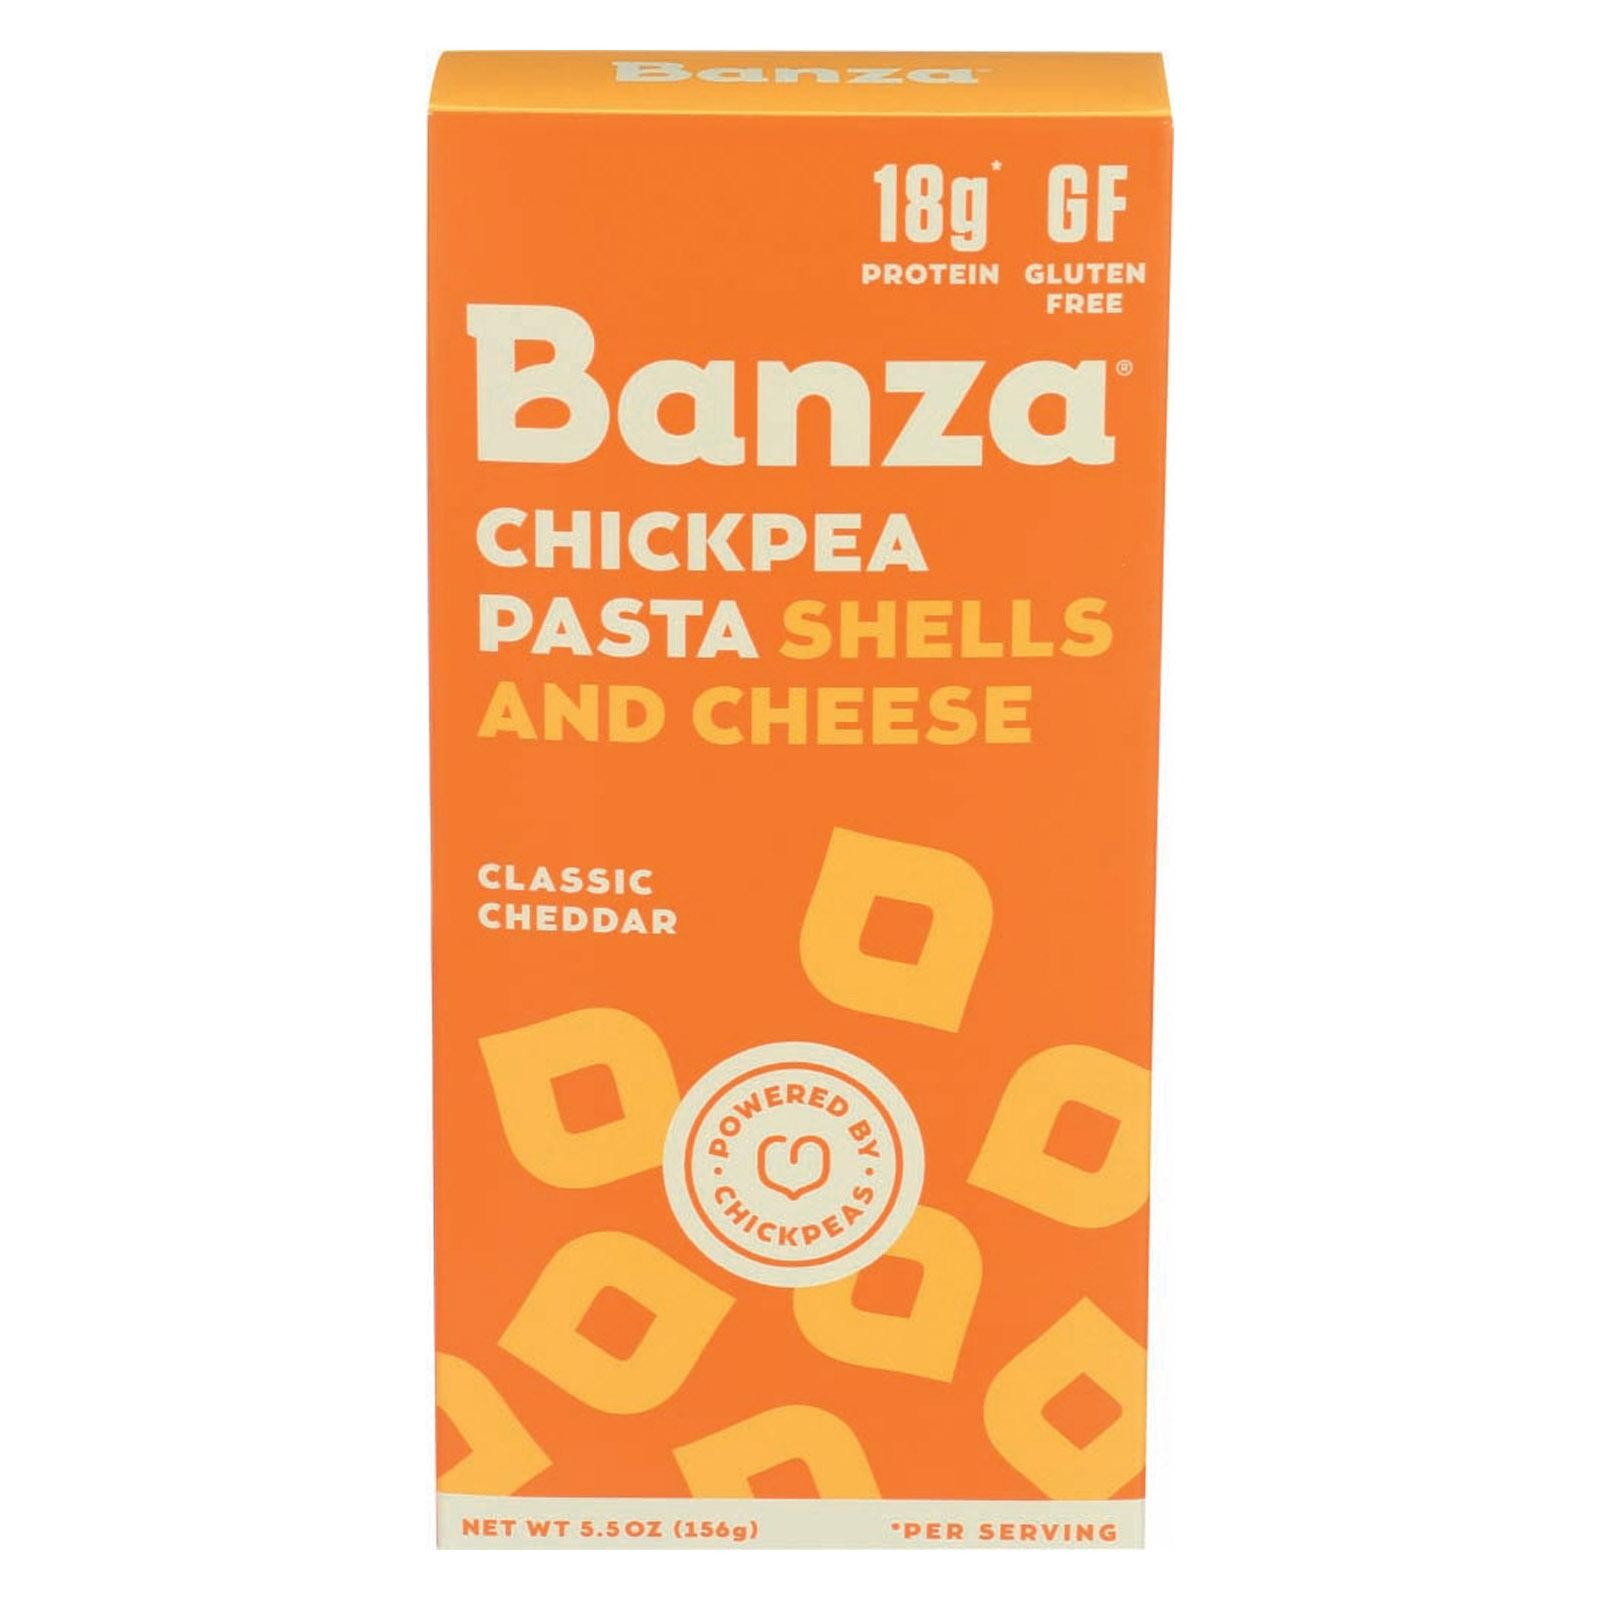 Banza Shells & Cheese - Chickpea - pack of 12 - 5.50 Oz